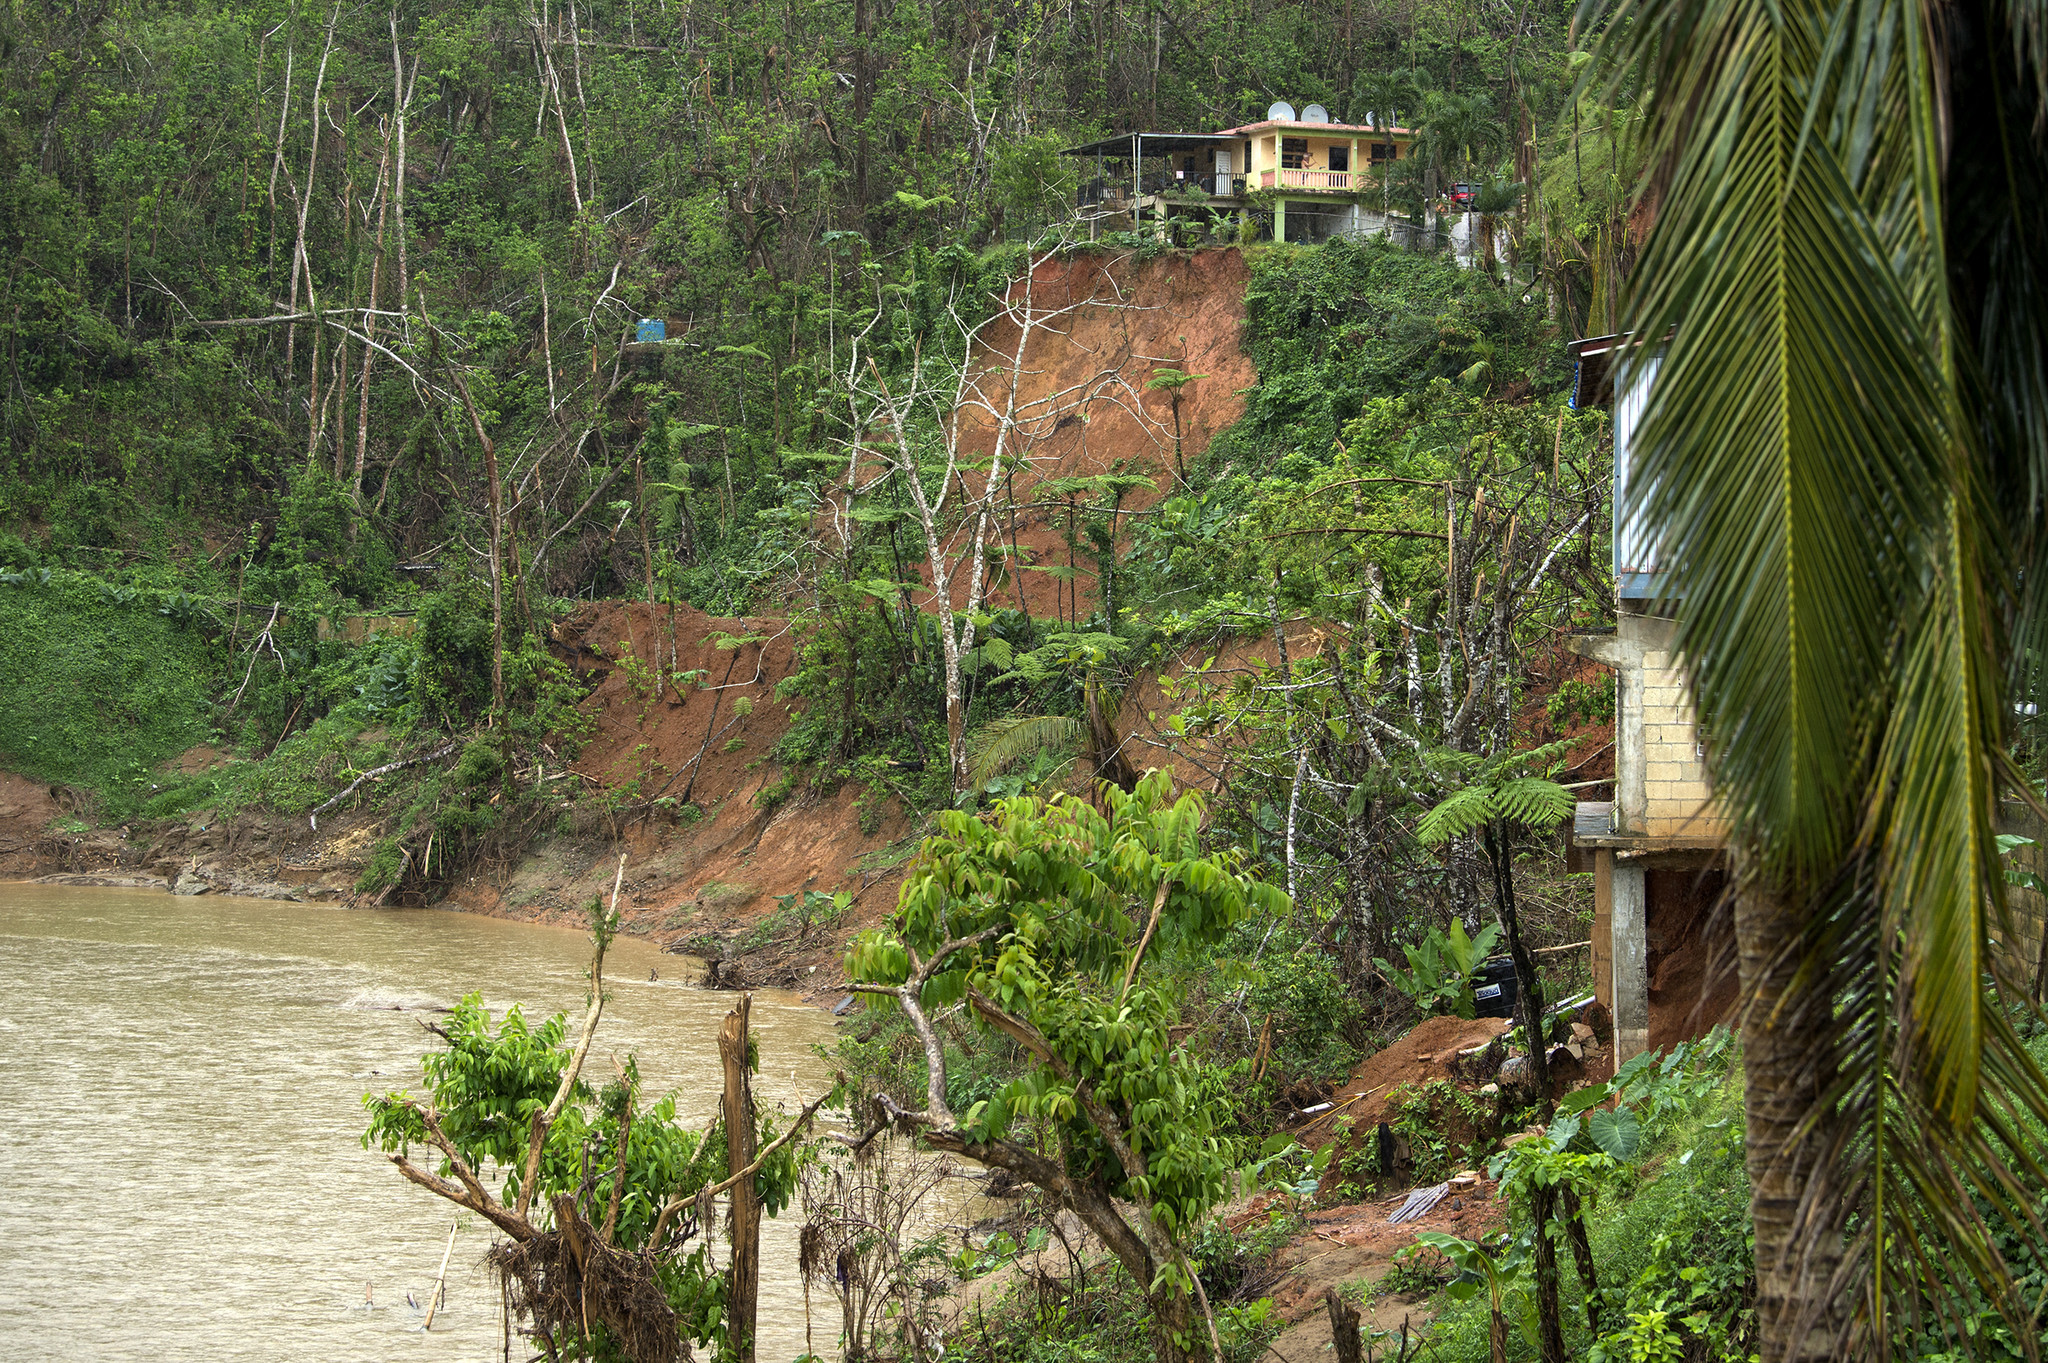 Homes on the banks of the Río Abajo neighborhood of Utuado, Puerto Rico show signs of mudslides and other damage after Hurricane Maria devastated the village. Samuel de Jesus' home sits near the edge of a tall slope, and he worries continuing rain might cause it to fall into the Río Viví below.